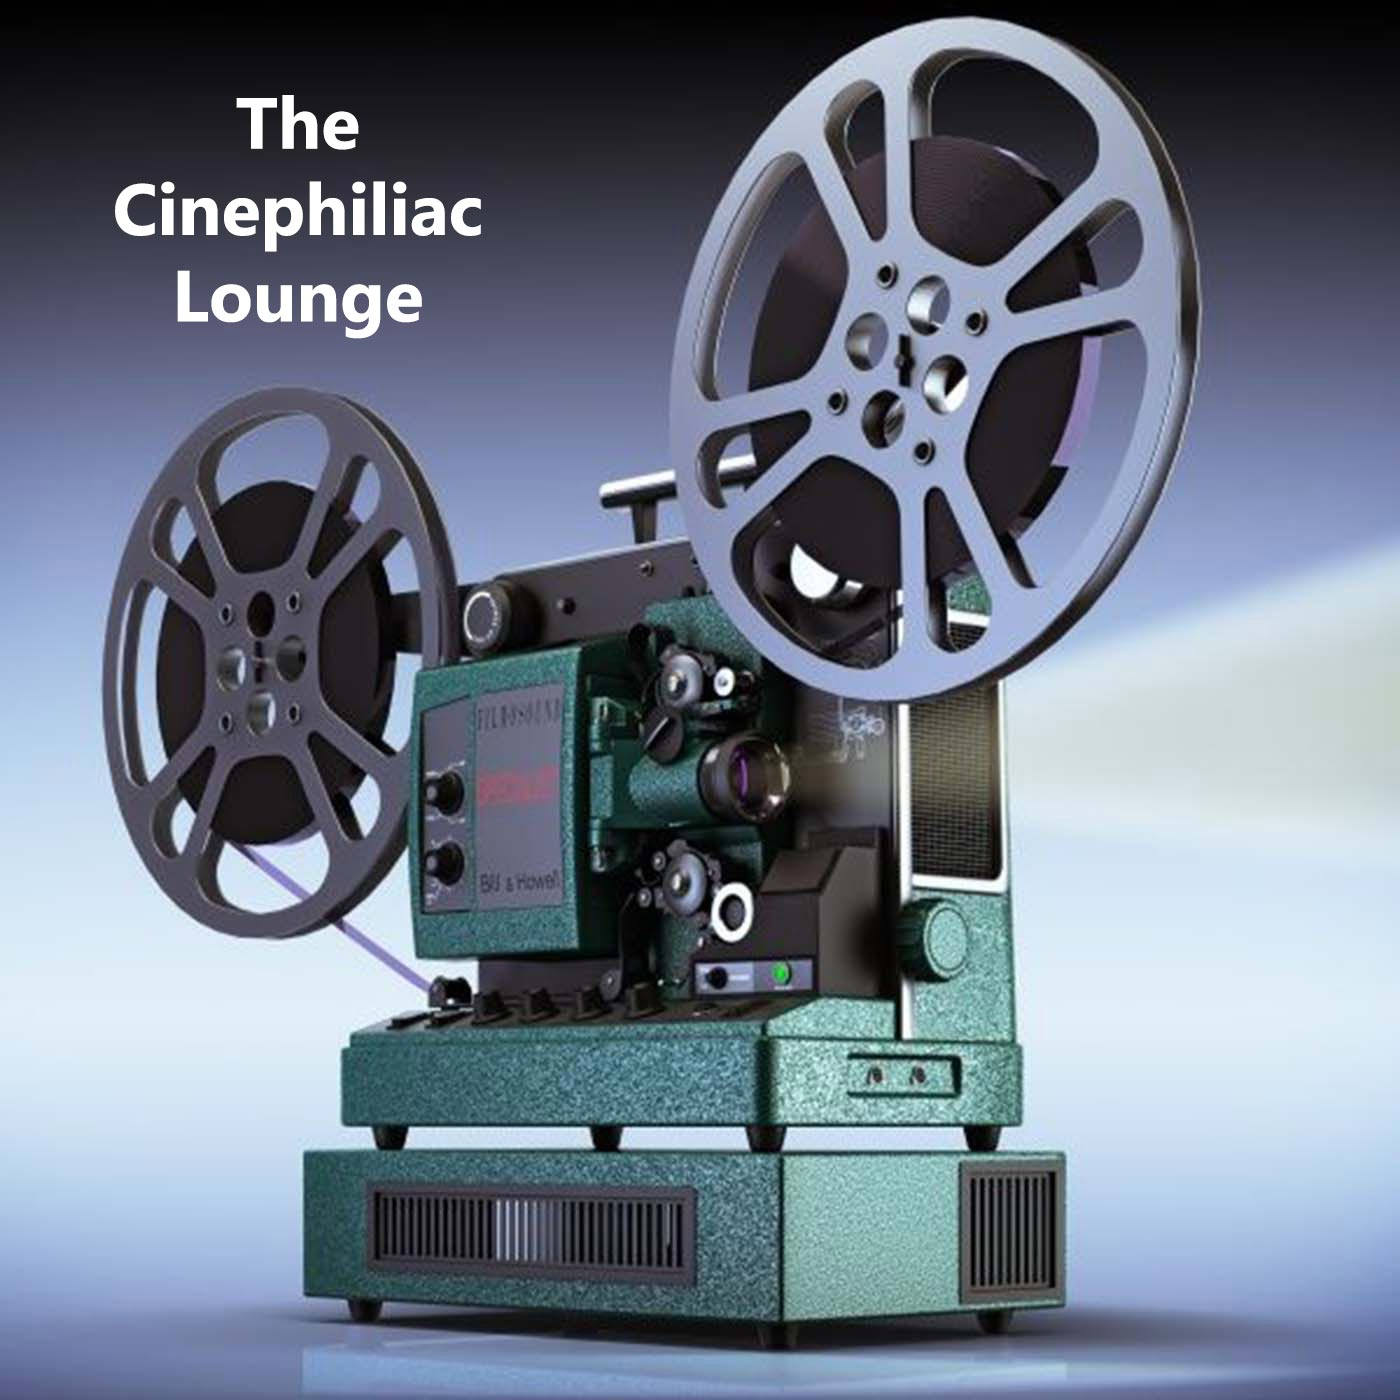 The Cinephiliac Lounge